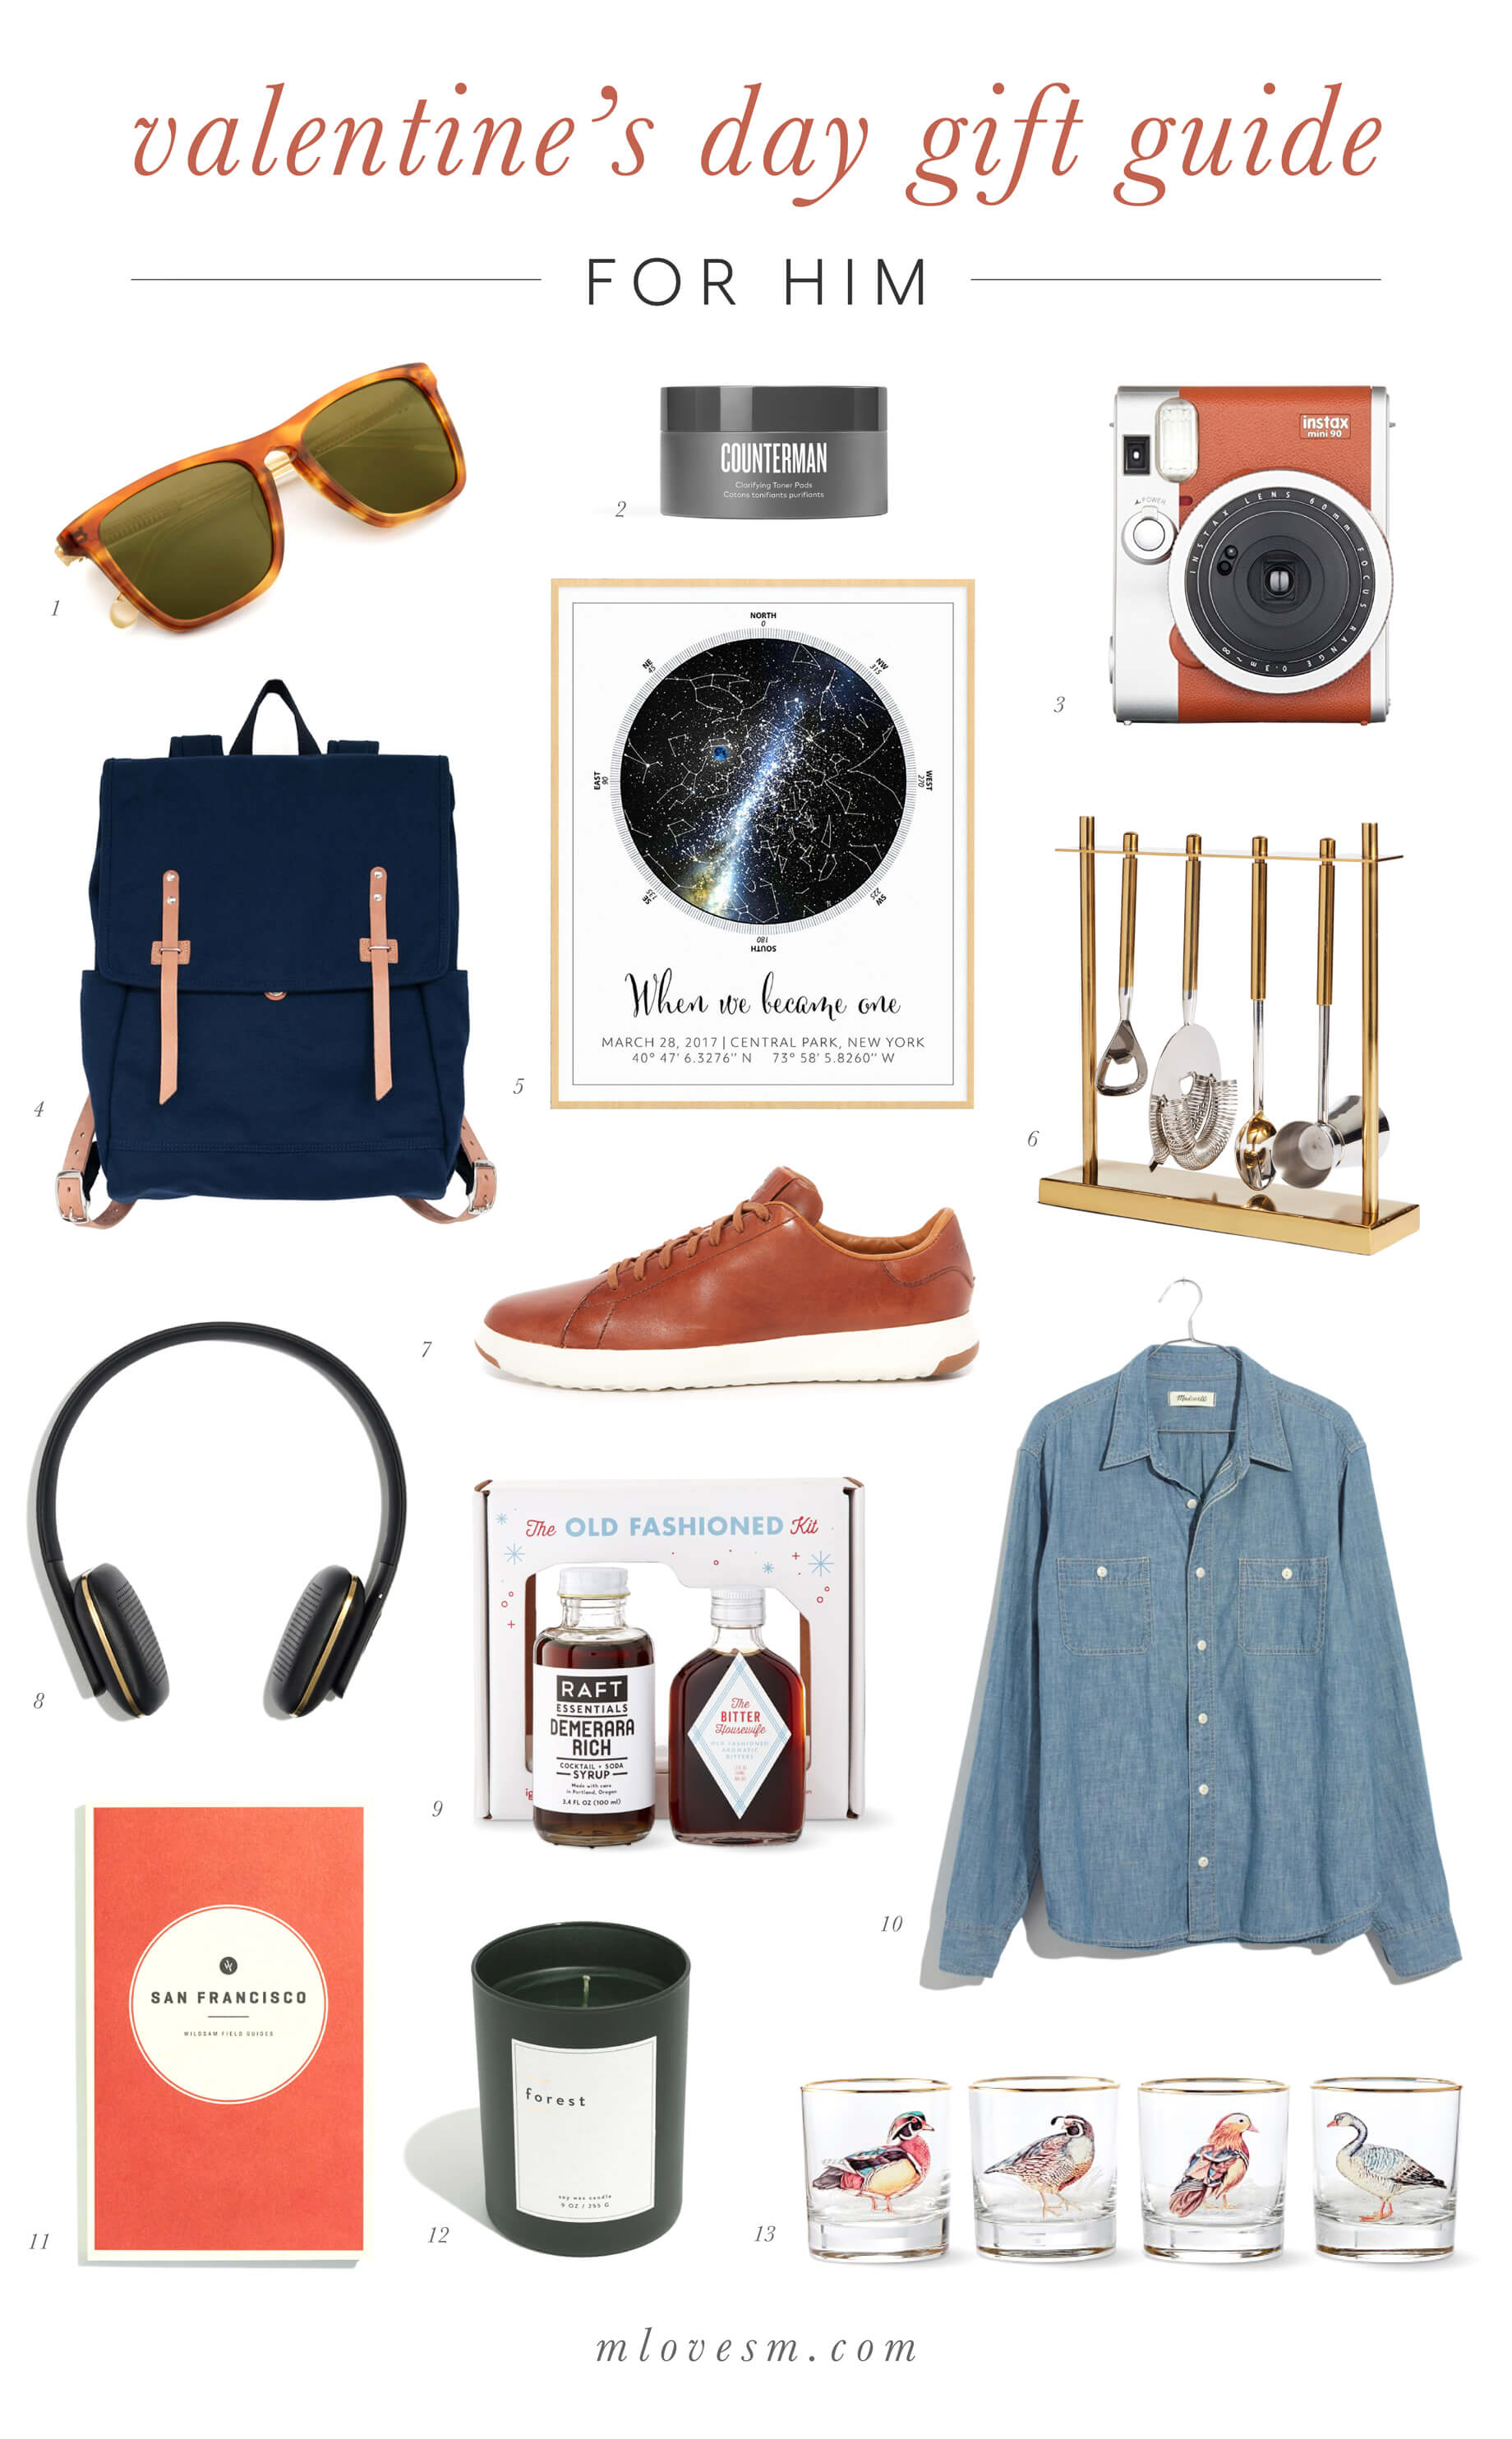 Valentine's Day Gift Guide for Men 2018 - M Loves M @marmar